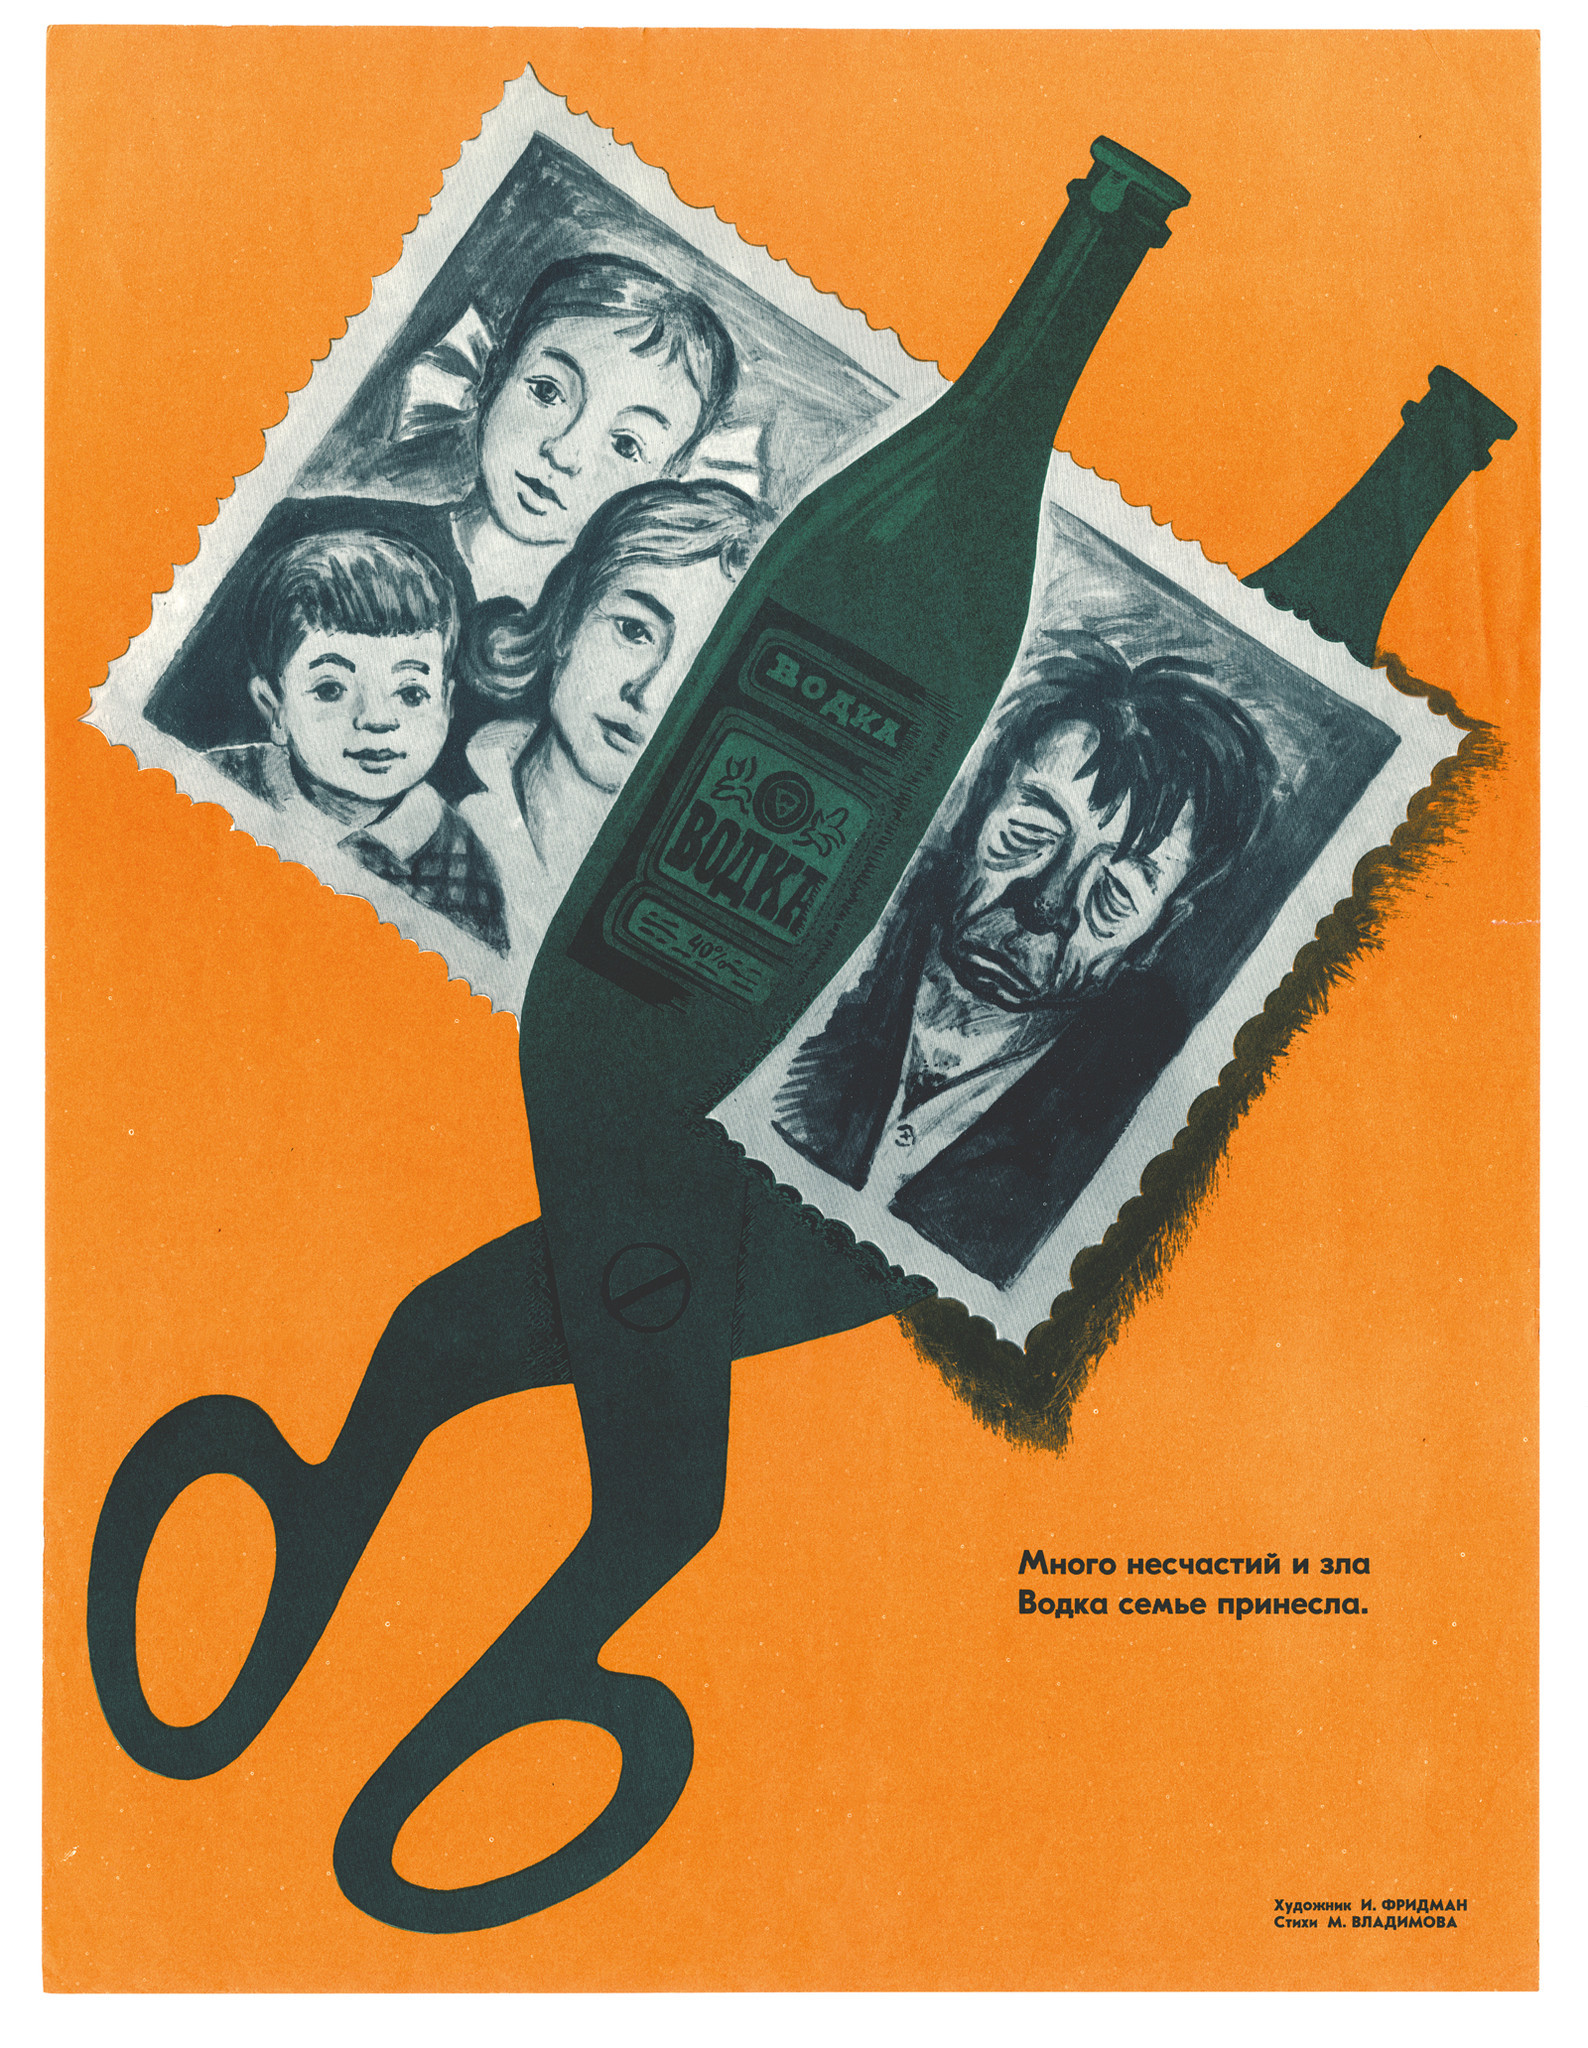 """A 1977 design from """"Alcohol: Soviet Anti-Alcohol Posters"""" reads, """"Much evil and wrongdoing to the family."""" The text on the bottle says vodka."""